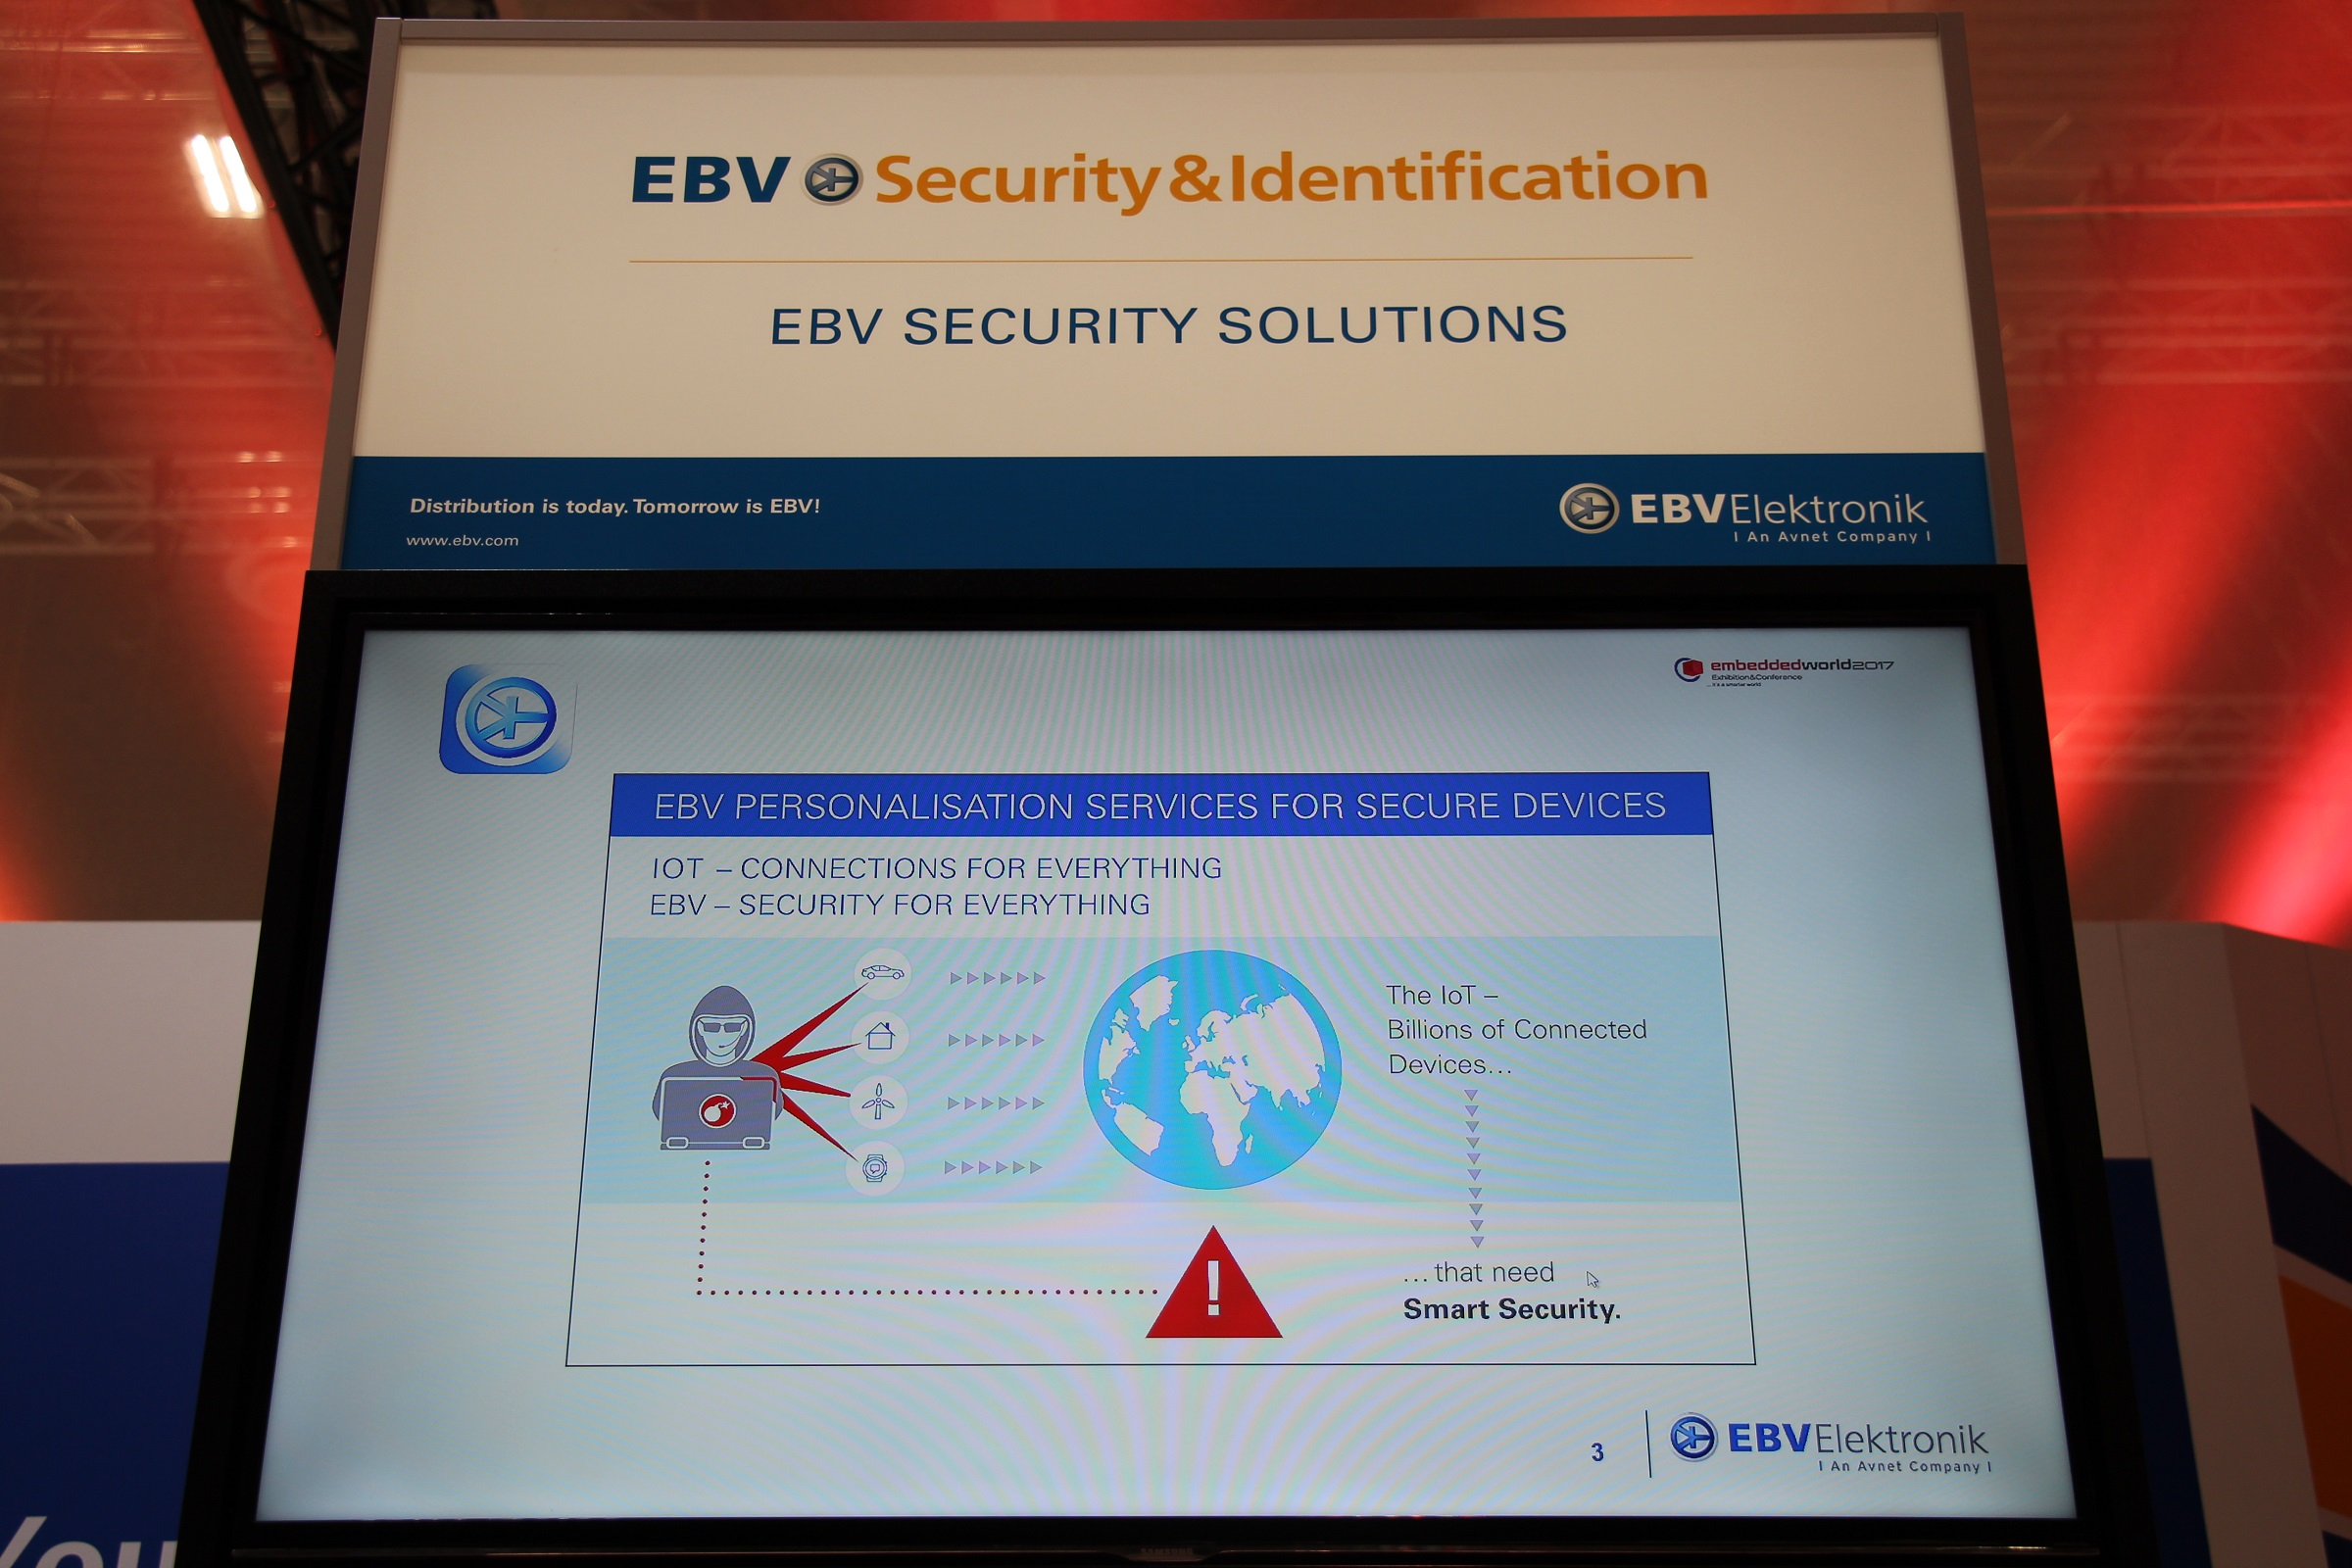 Embedded World 2017 Security Identification